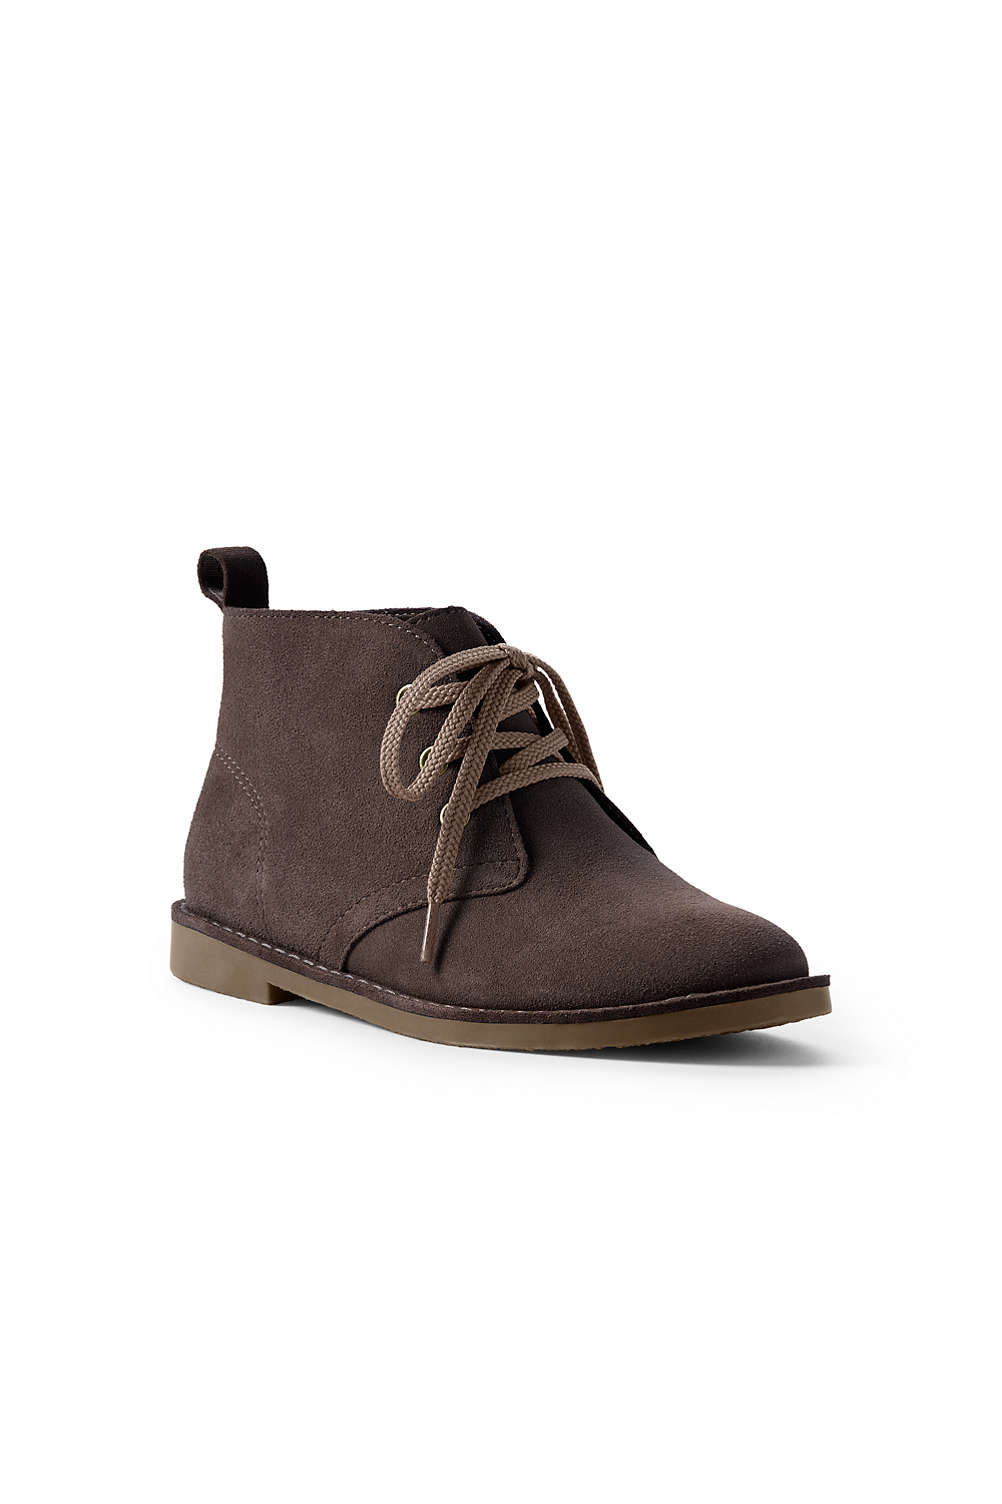 edf41d030c1a6 Boys Chukka Boots from Lands' End